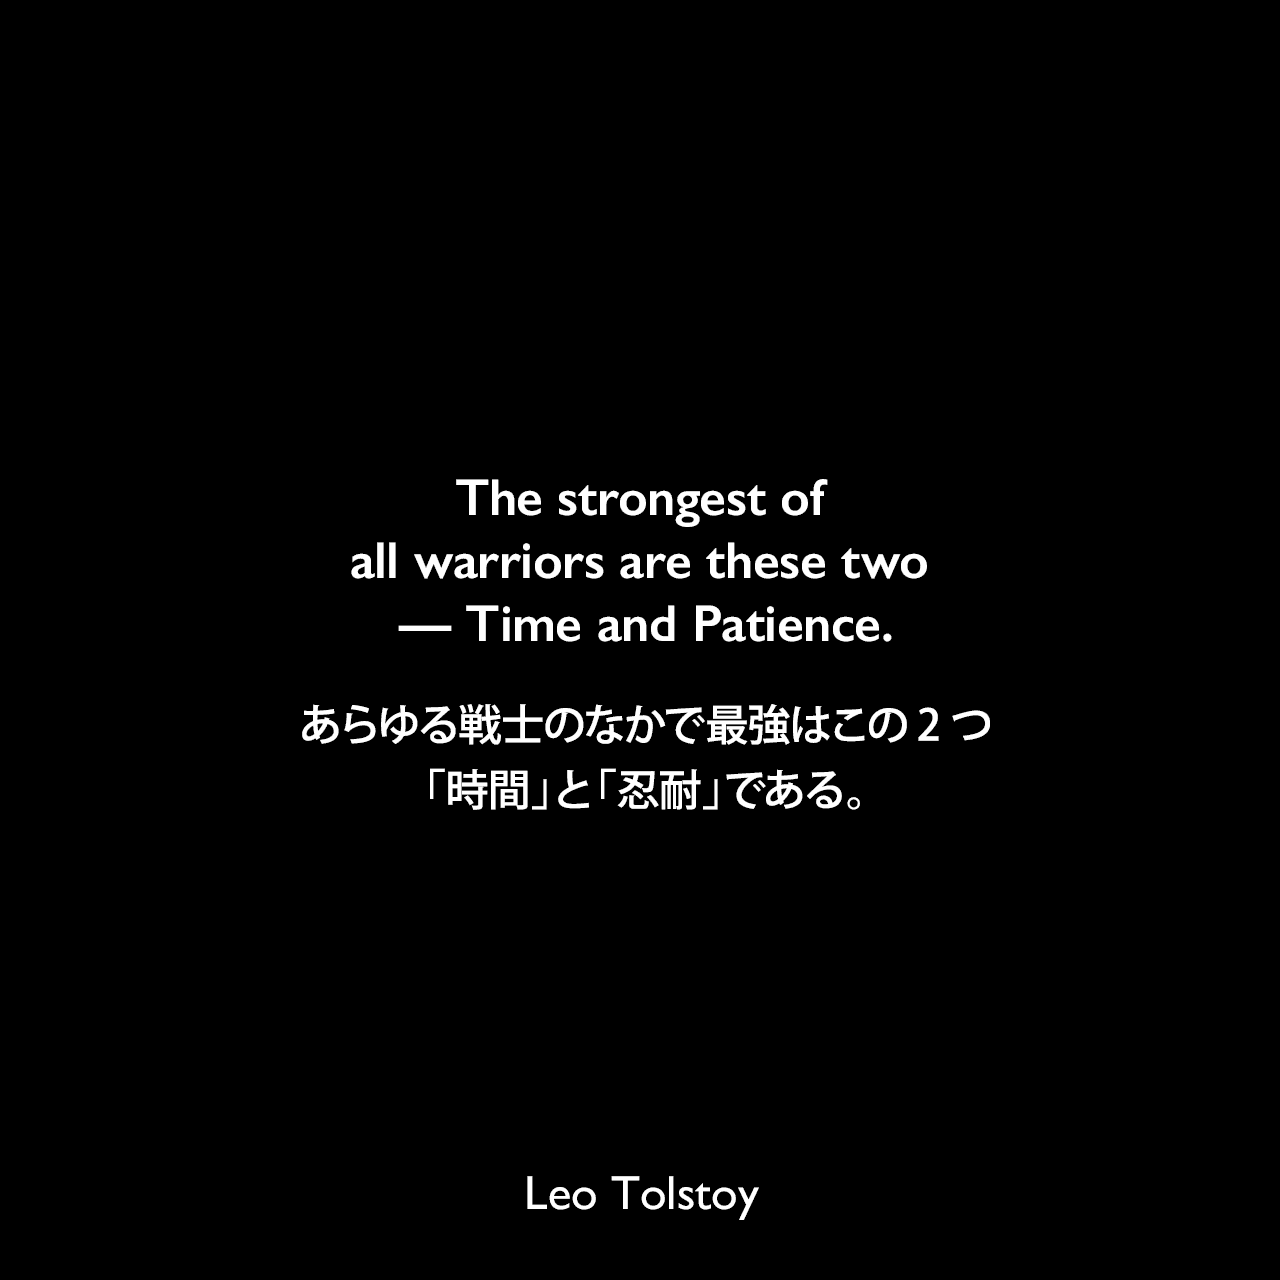 The strongest of all warriors are these two — Time and Patience.あらゆる戦士のなかで最強はこの2つ、「時間」と「忍耐」である。- トルストイによる小説「戦争と平和」より